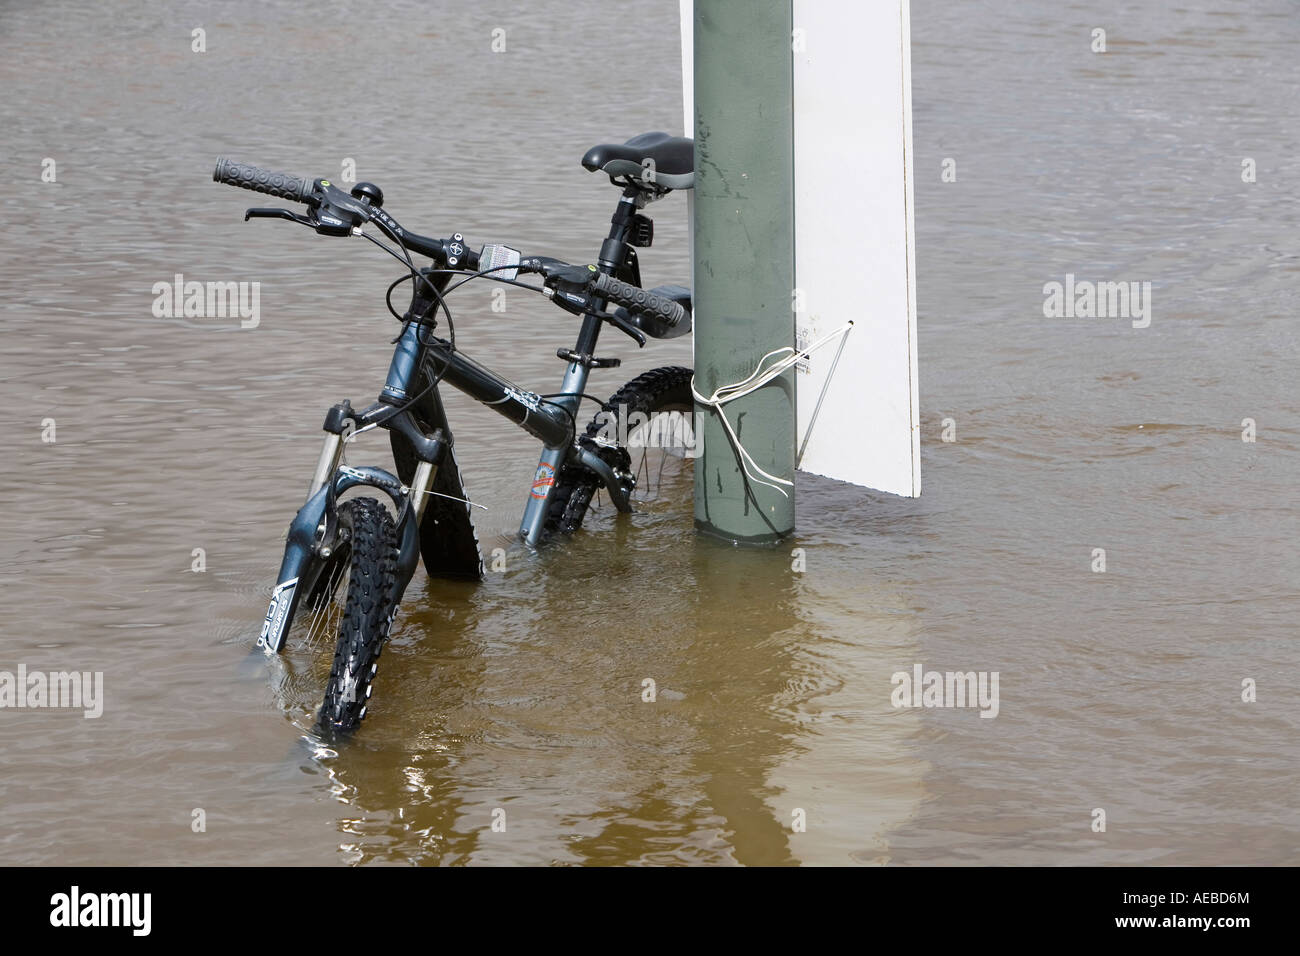 A bike in floods in upton upon Severn - Stock Image